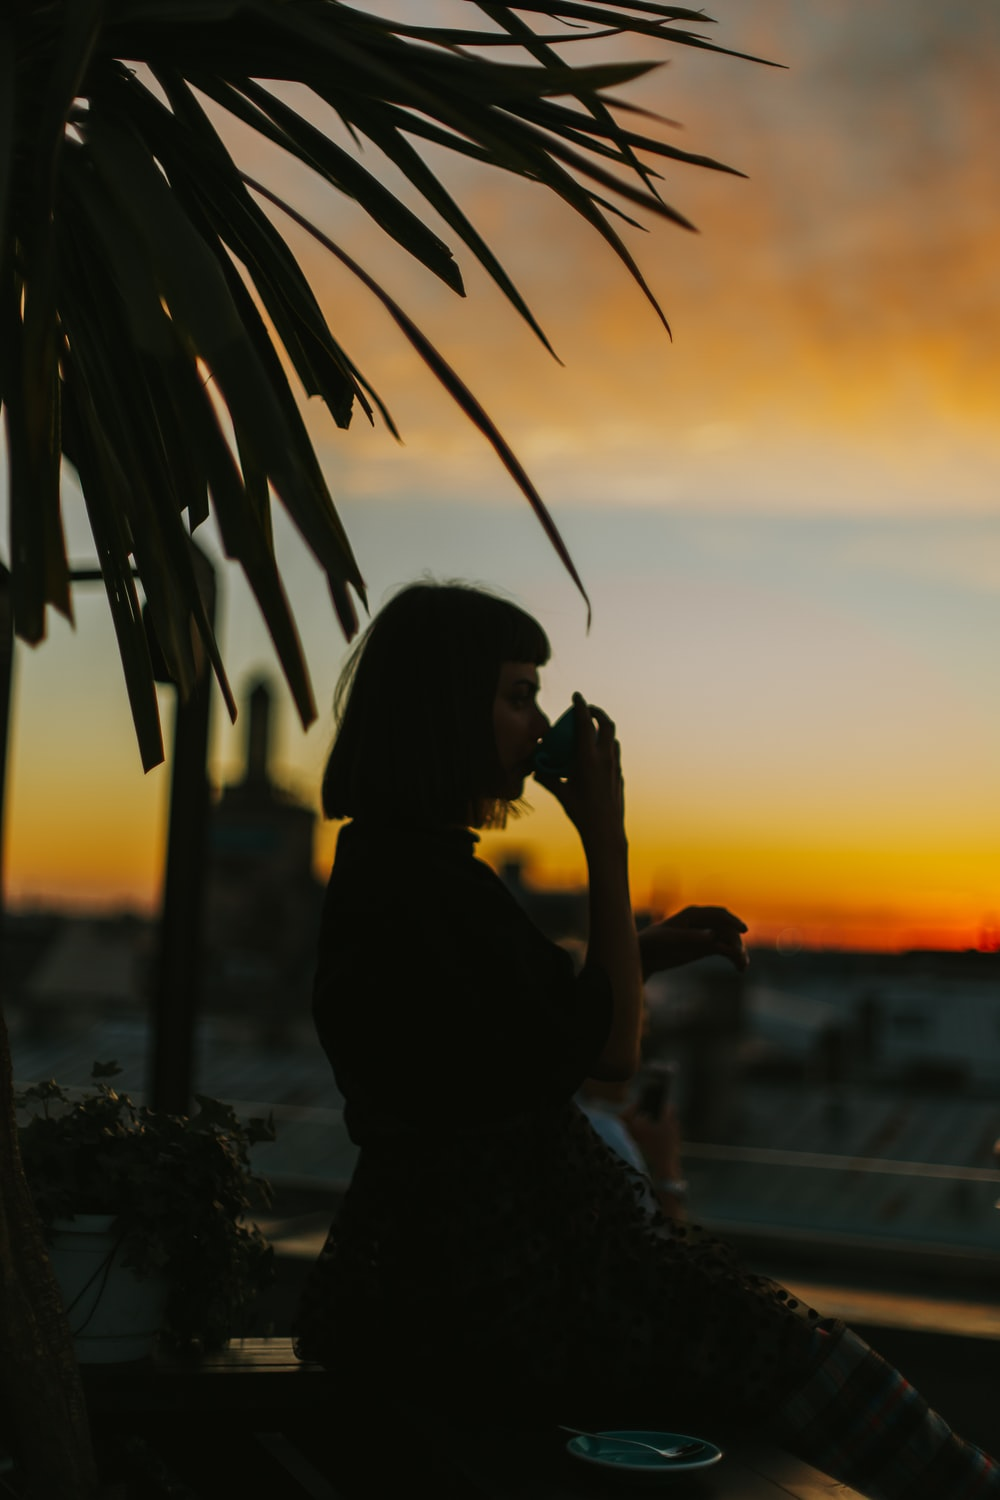 silhouette woman drinking from teacup during golden hour